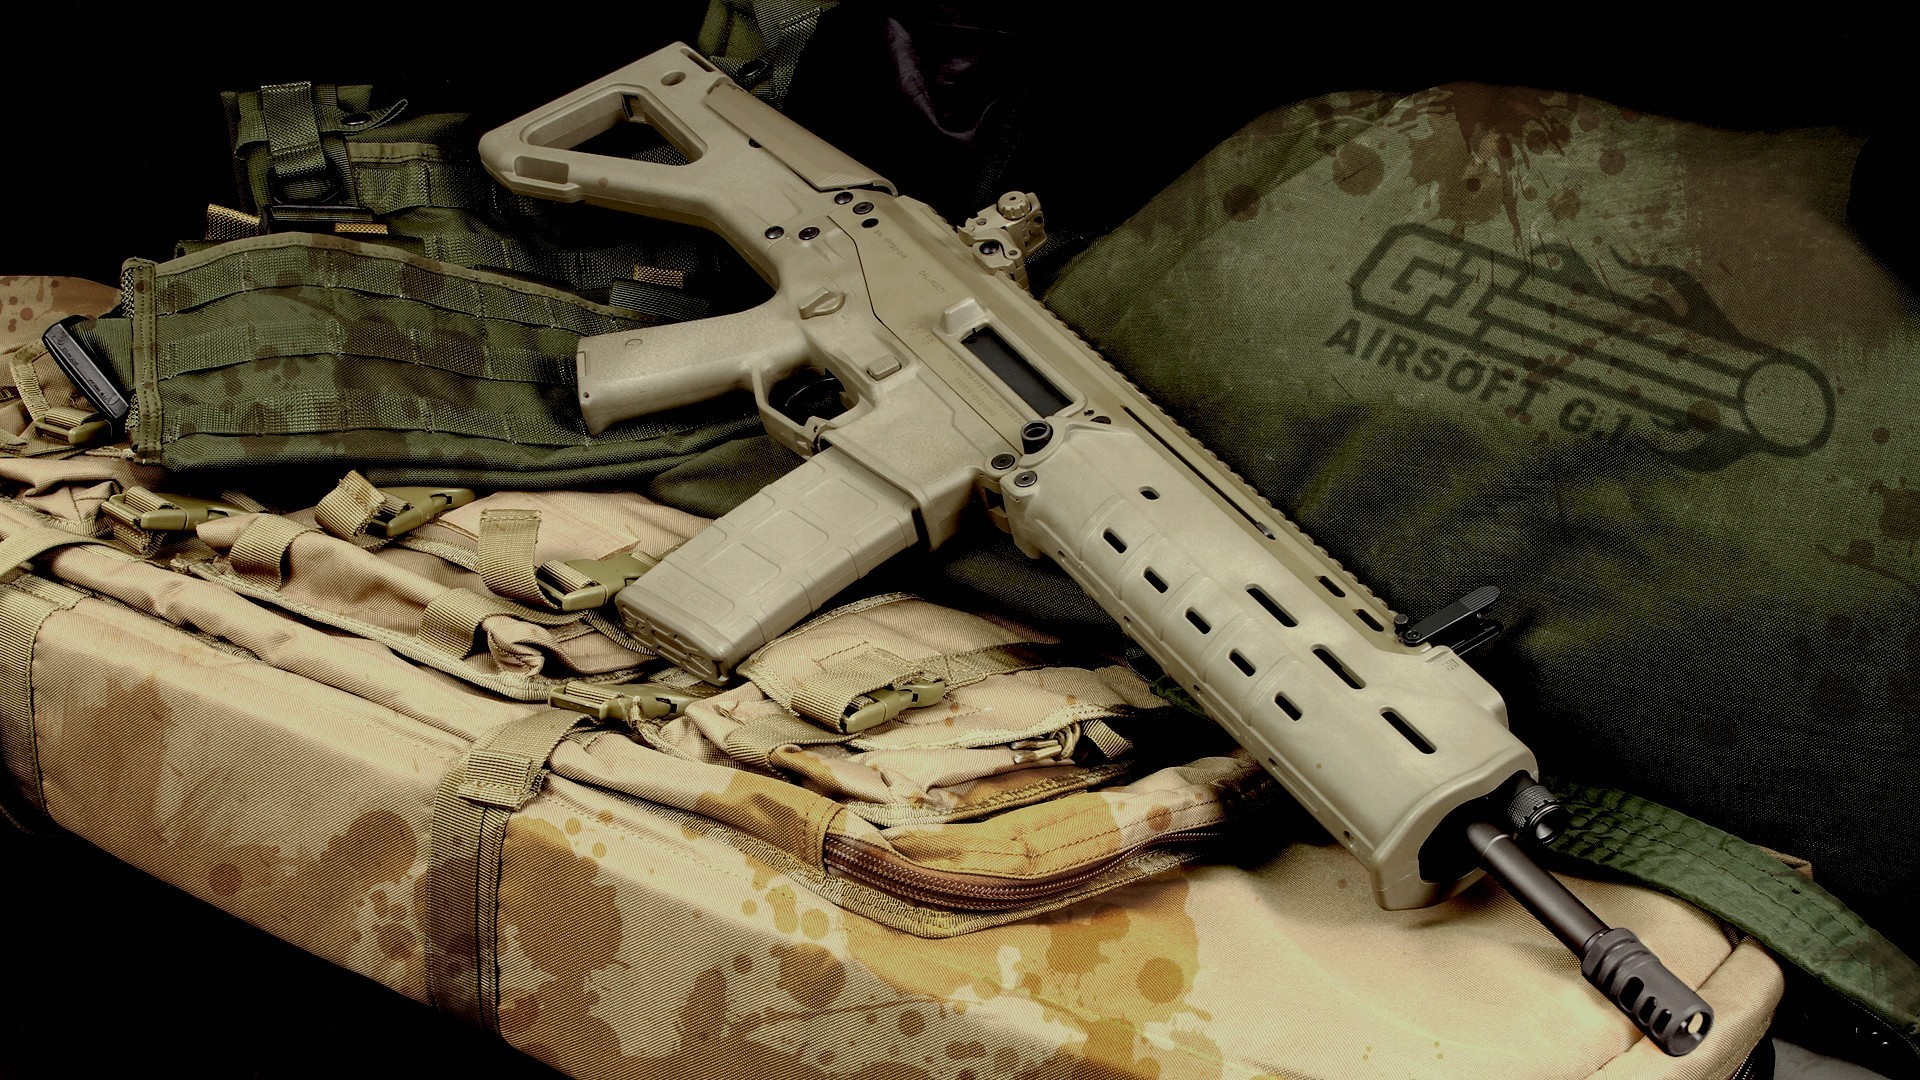 fn scar hd wallpapers for desktop download